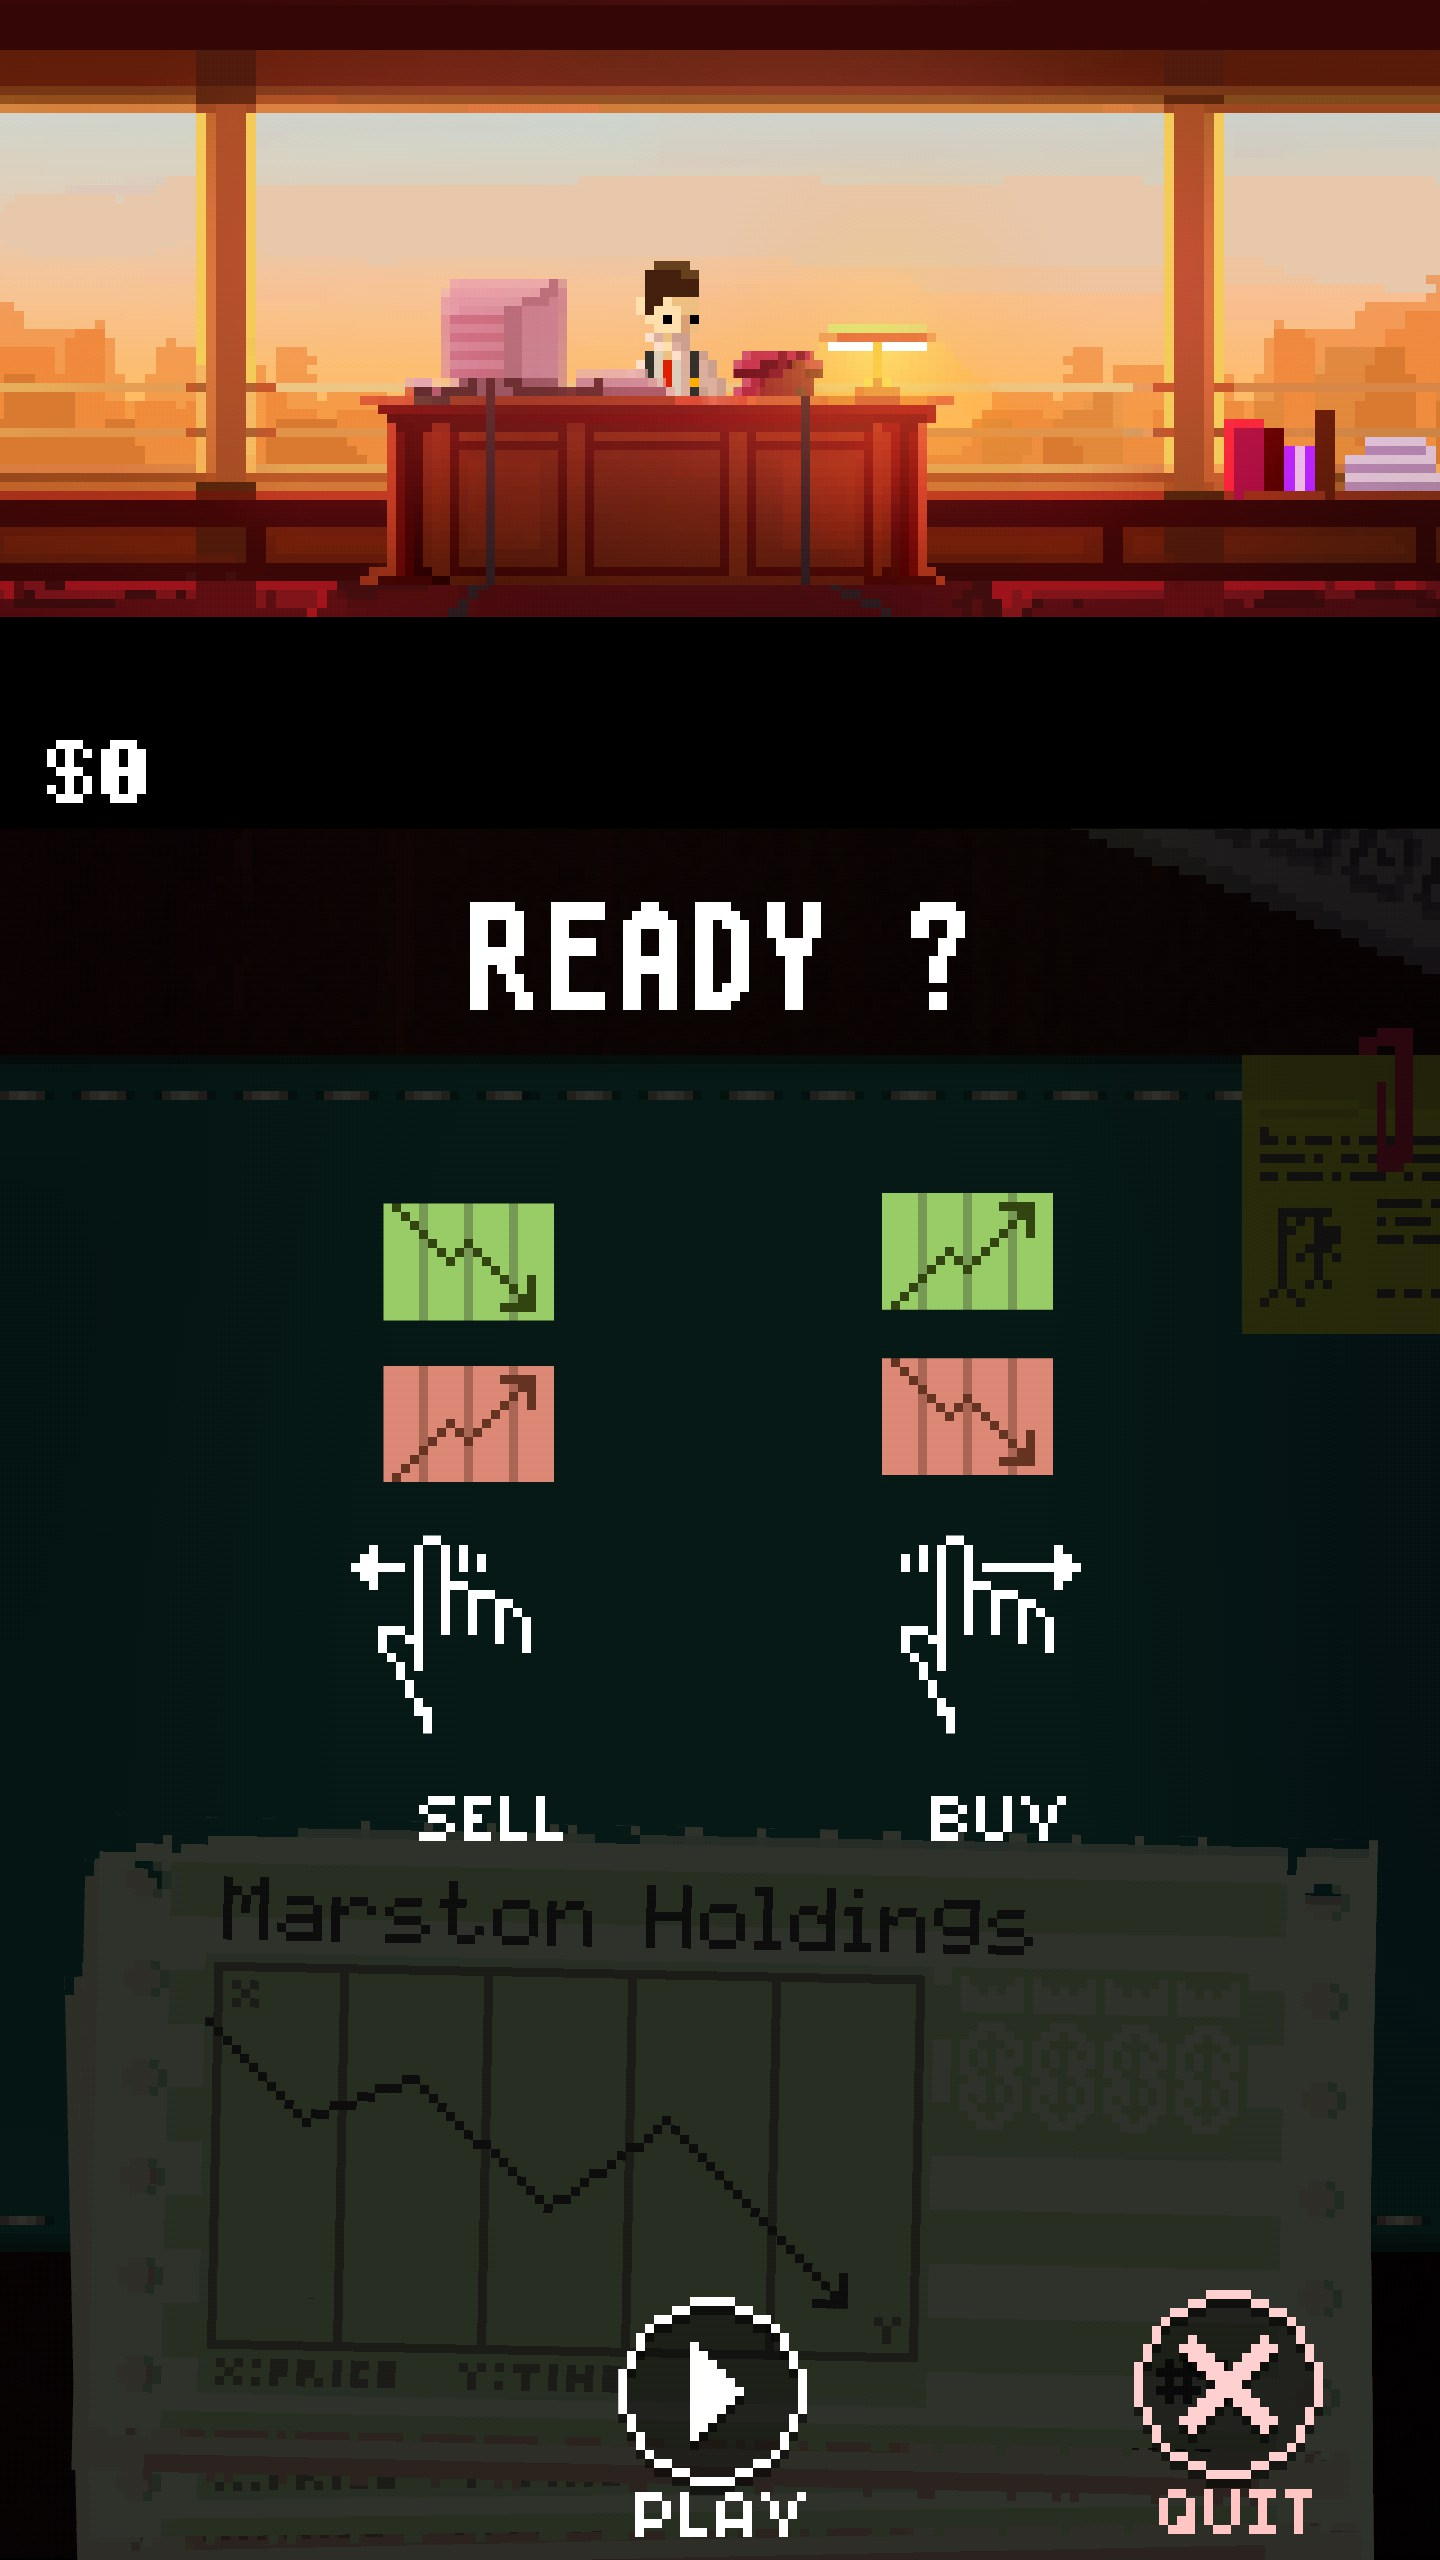 how to buy stocks on marketwatch game